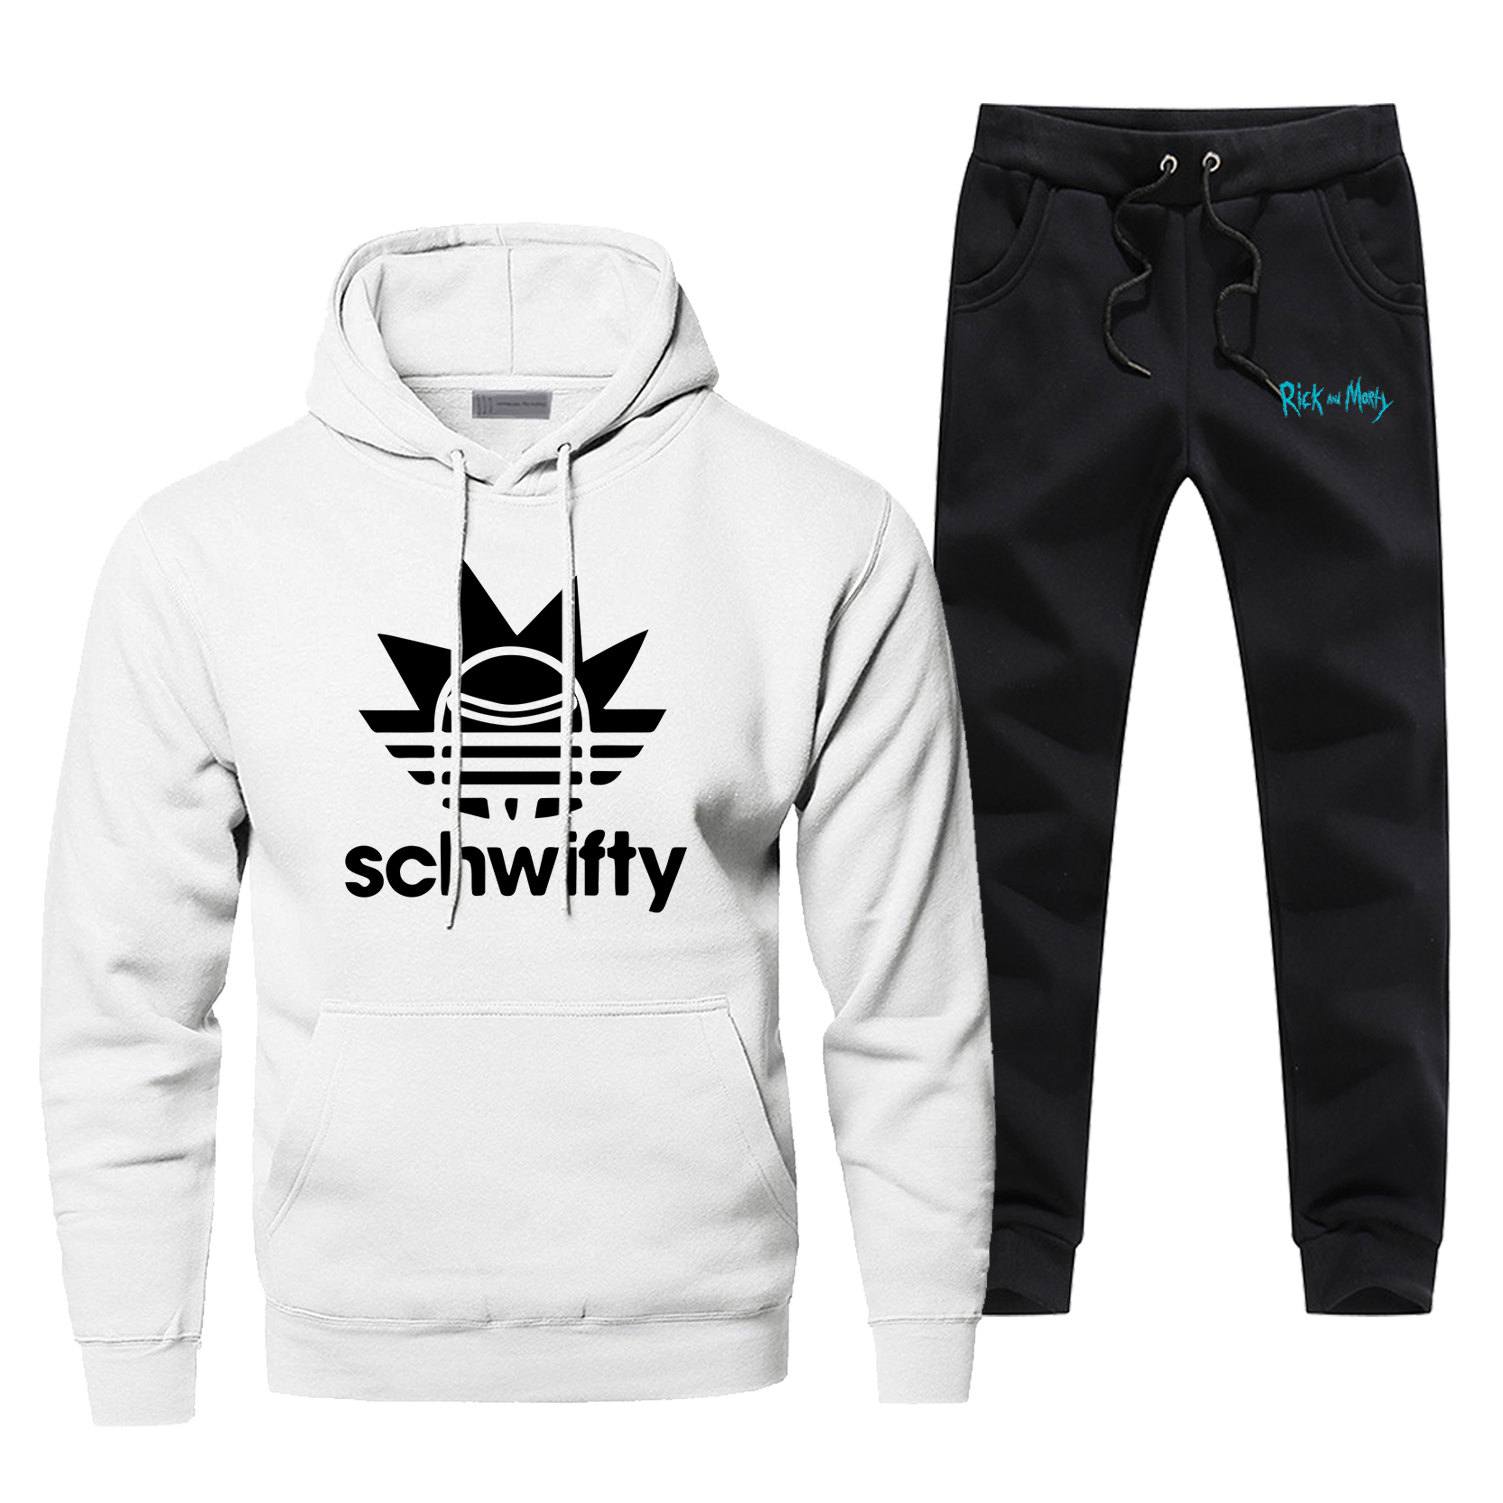 Rick And Morty Hoodies Pant Set Men Schwifity Cartoon Two Piece Set Tops Sweatshirt Sweatpants Sportswear Autumn 2 PCS Tracksuit